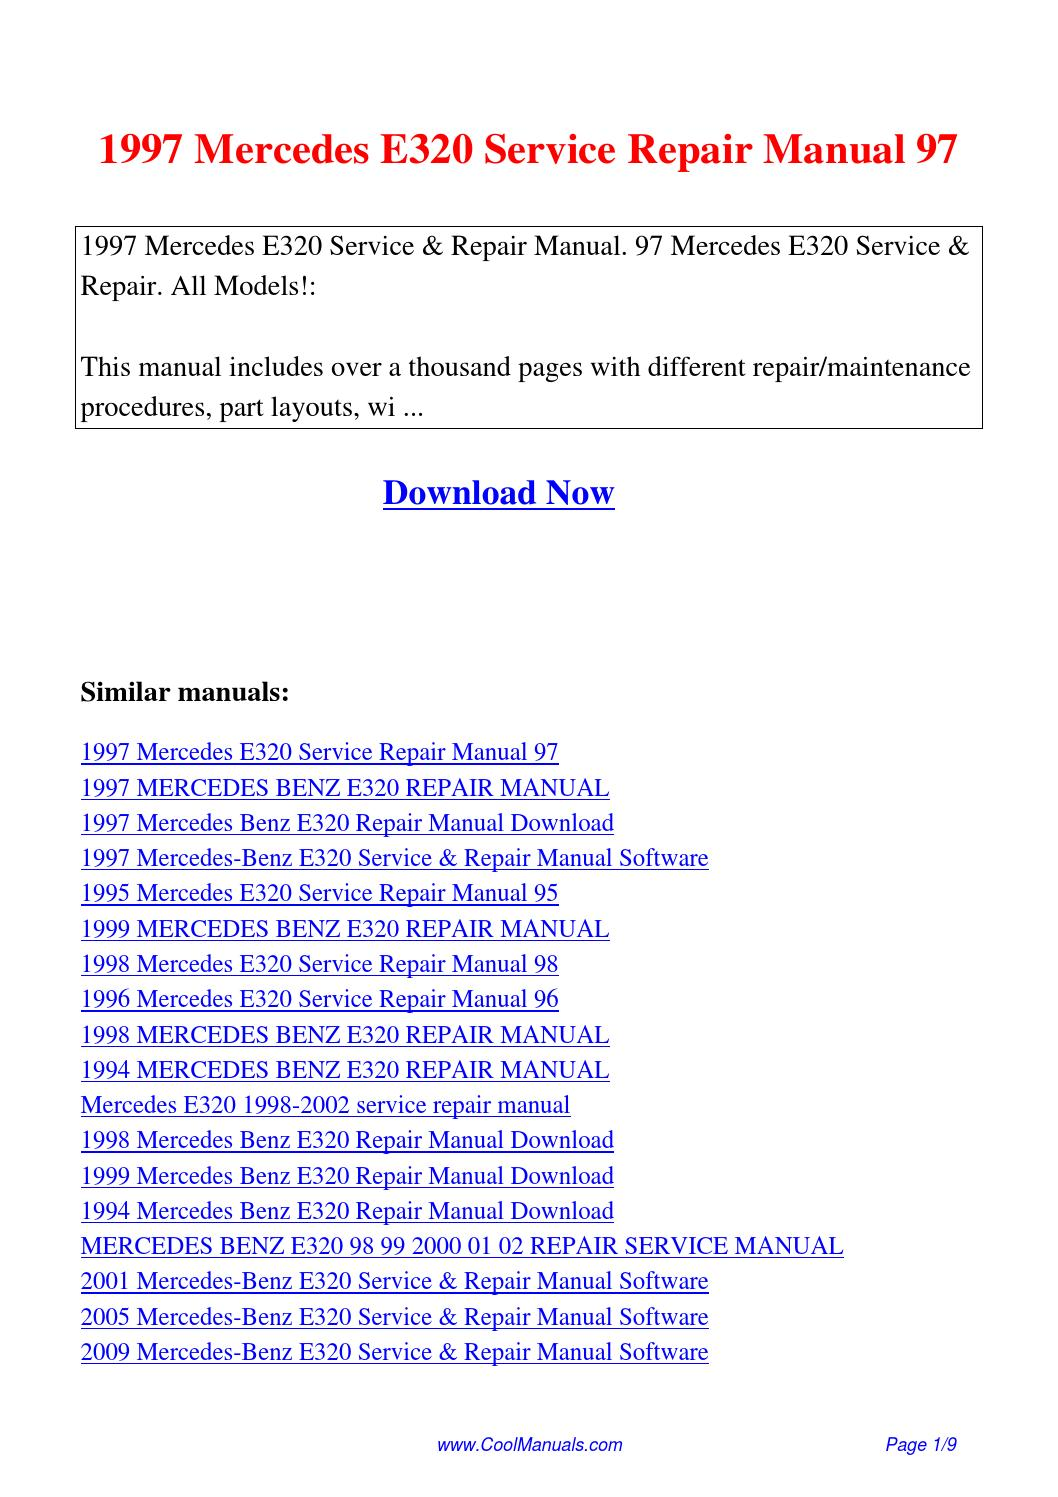 1997 mercedes e320 service repair manual 97pdf by linda pong issuu publicscrutiny Choice Image